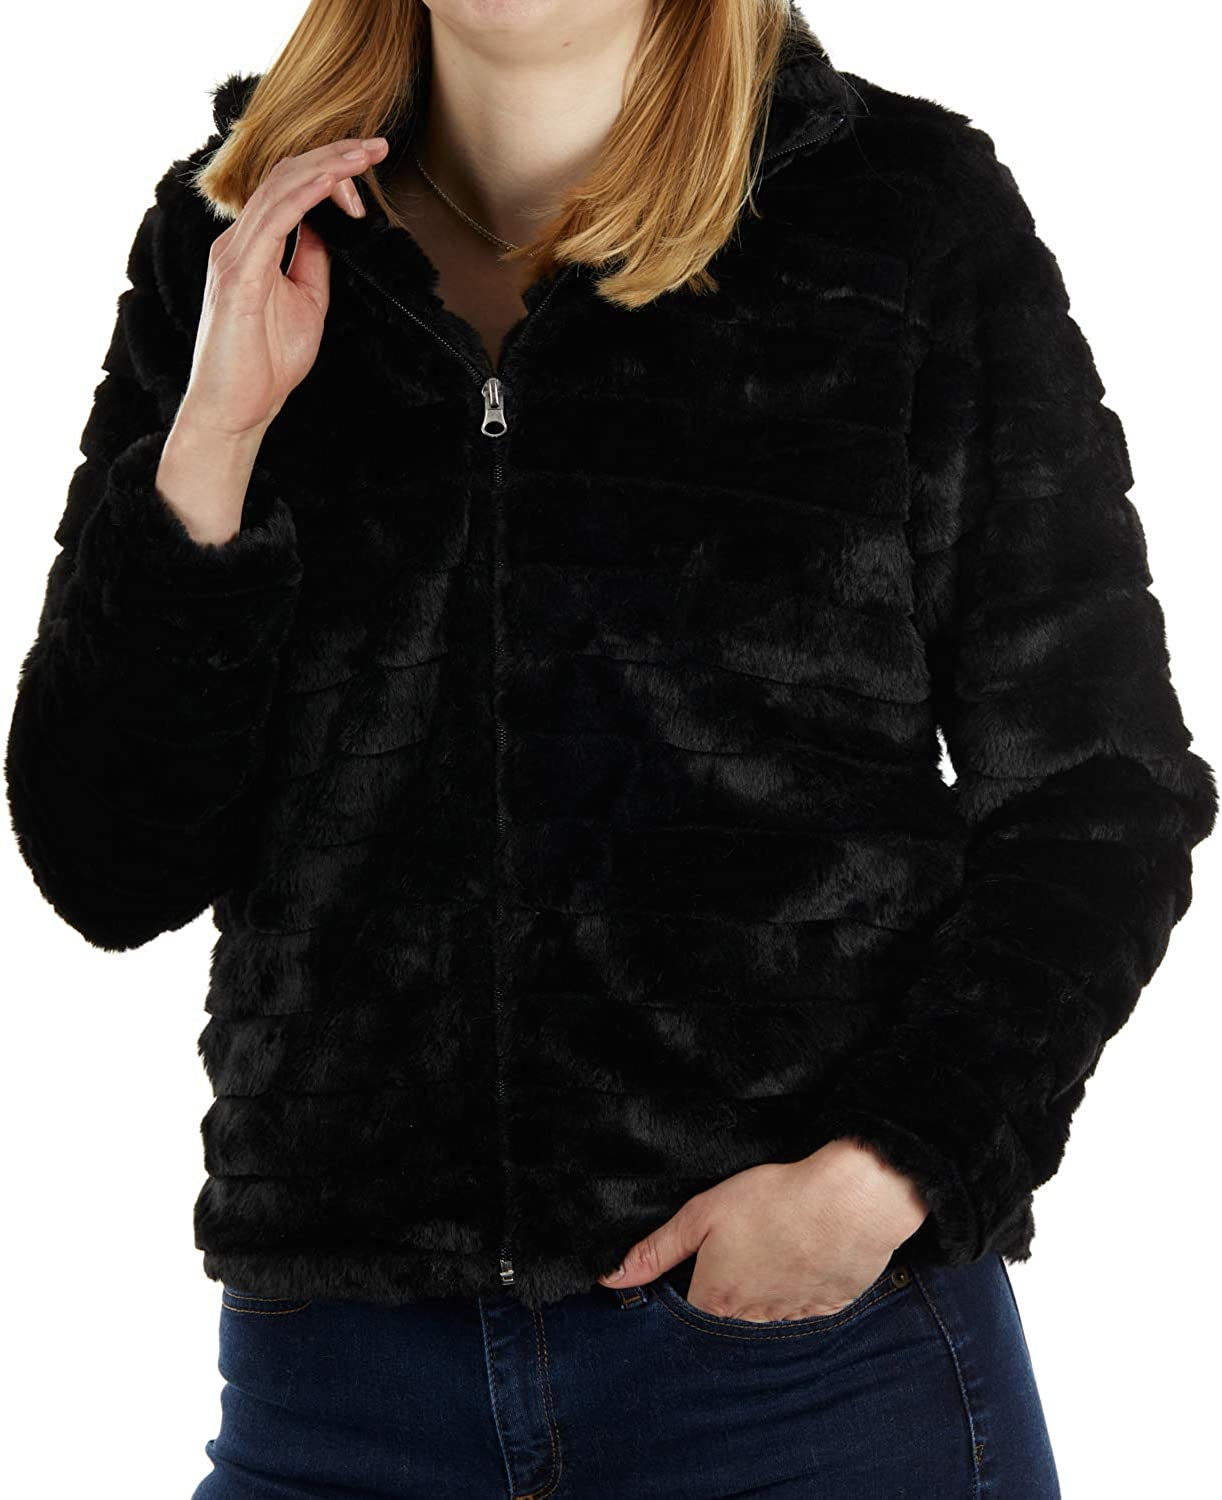 We OFFer at cheap prices KATYDID free Rabbit Faux Fur Jacket Soft Polyester Womens -